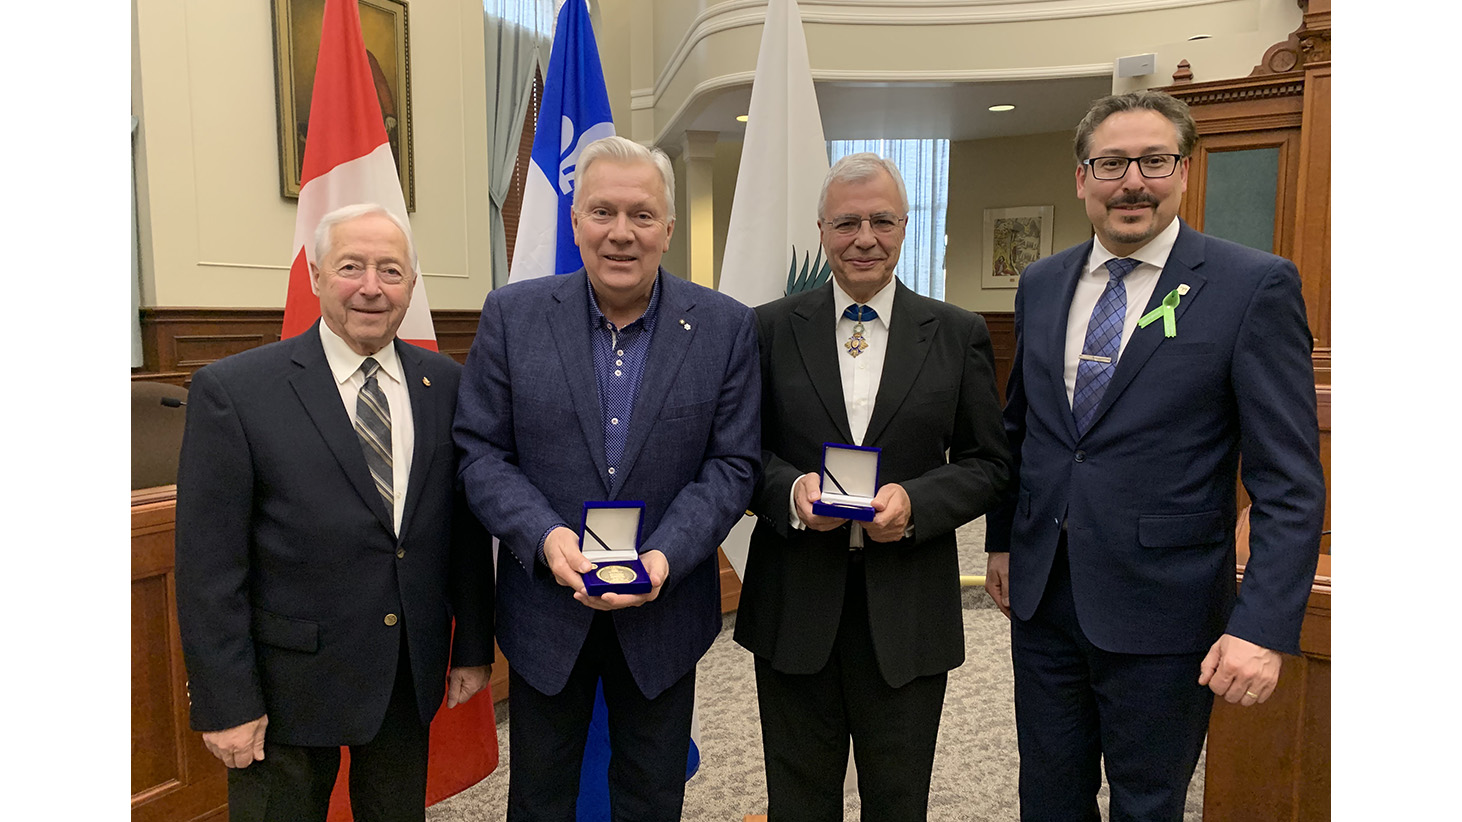 Two Sherbrooke residents honoured for exceptional merit